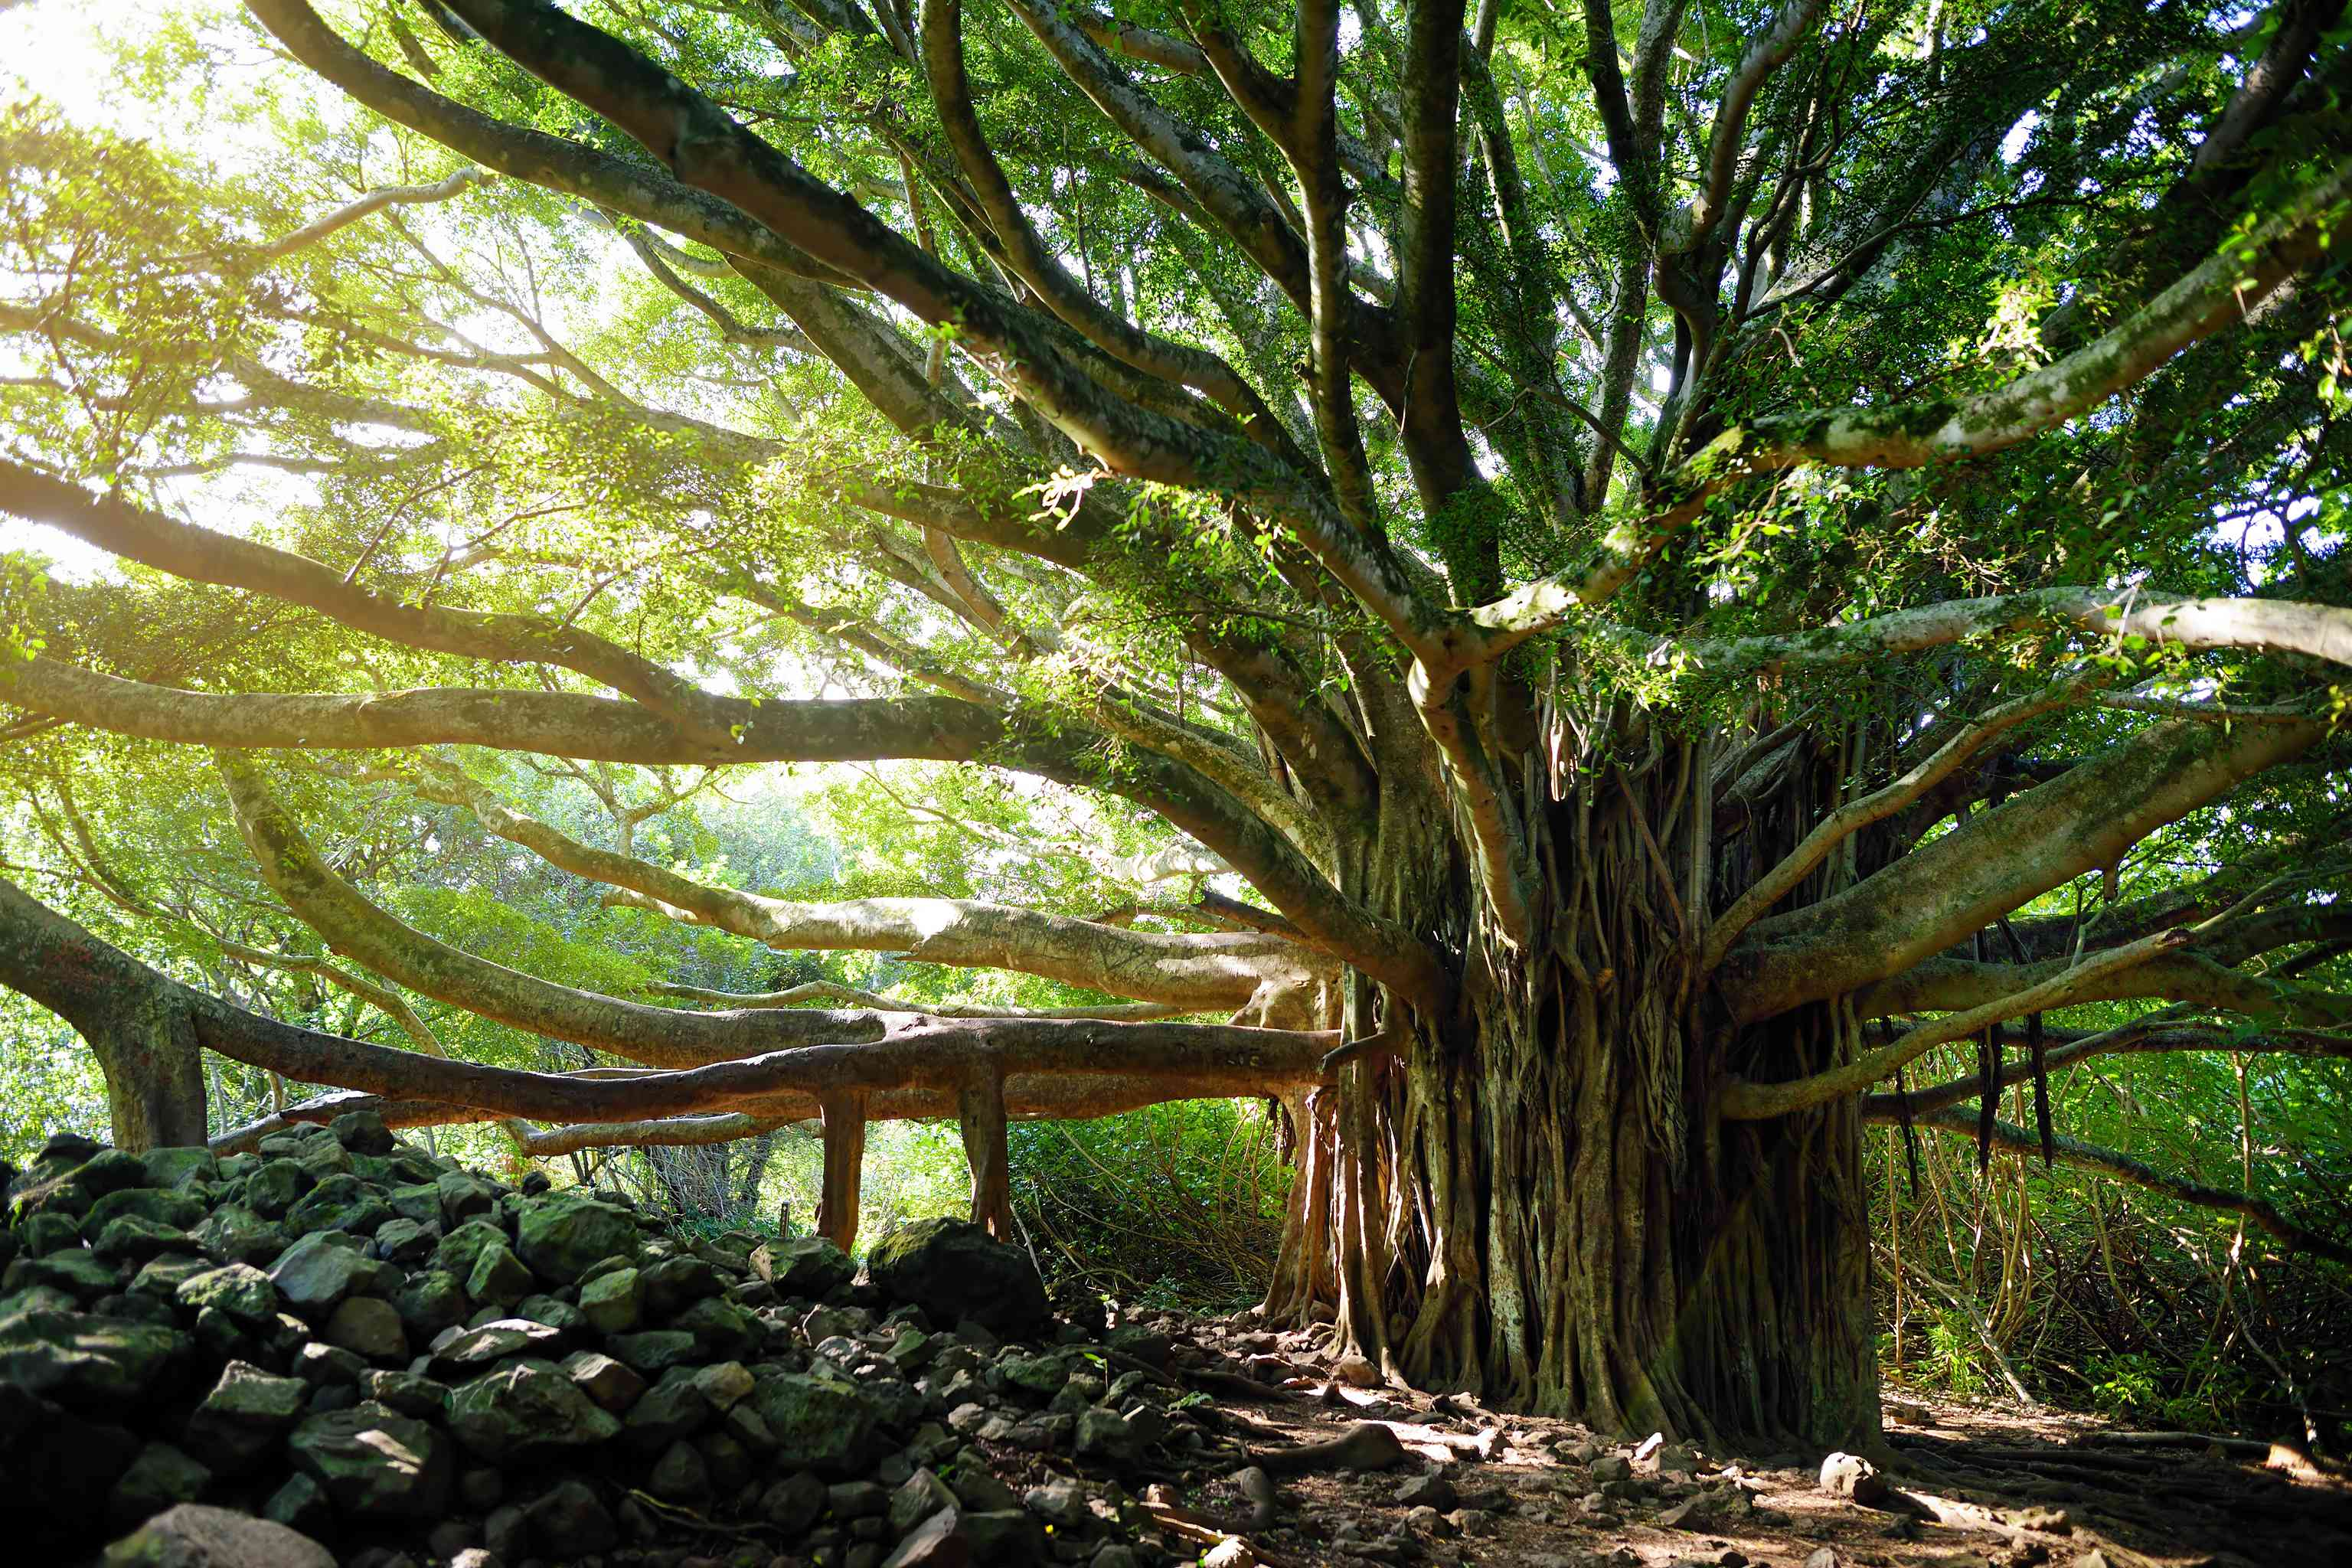 Indian banyan tree